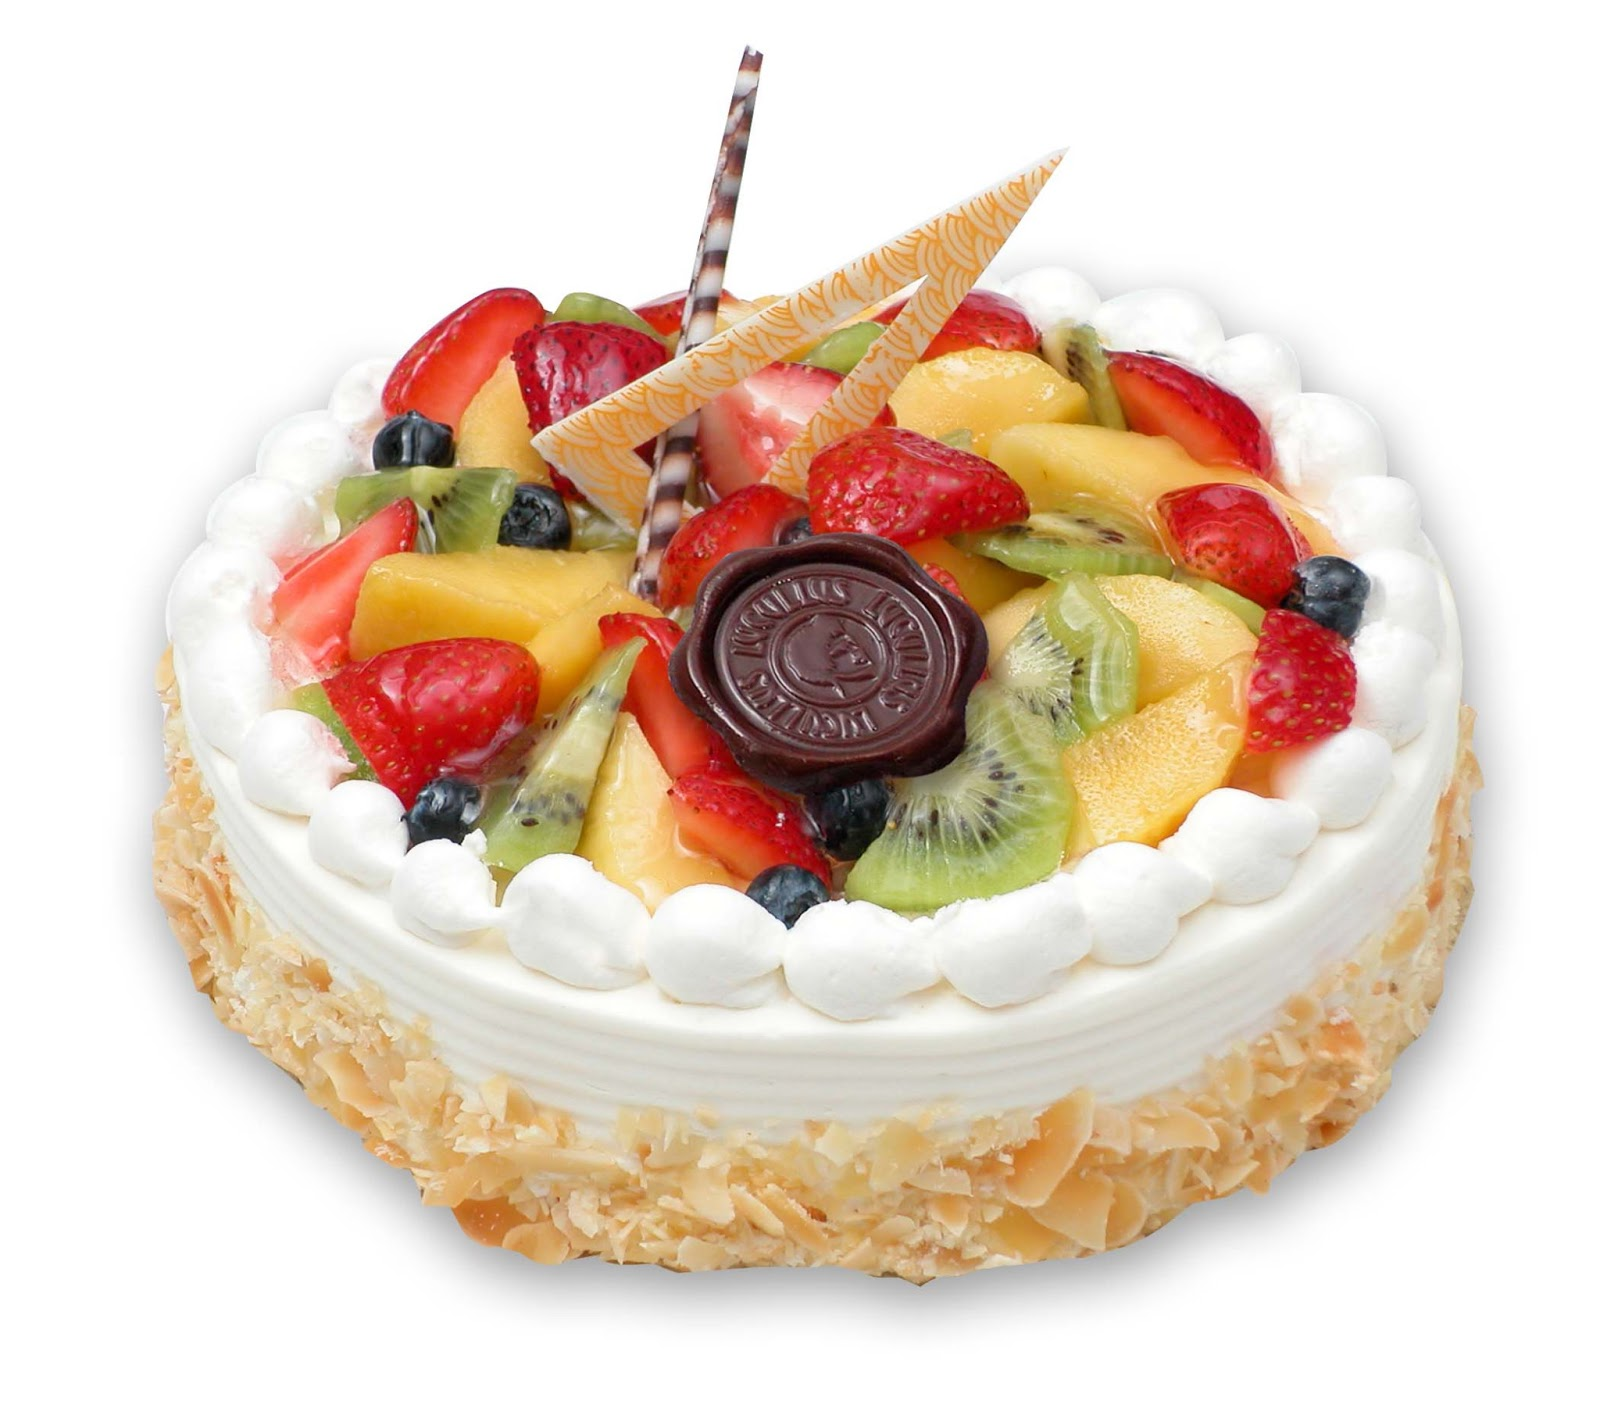 Cake Images With S : Fresh Fruit Cake Recipe ~ Easy Dessert Recipes